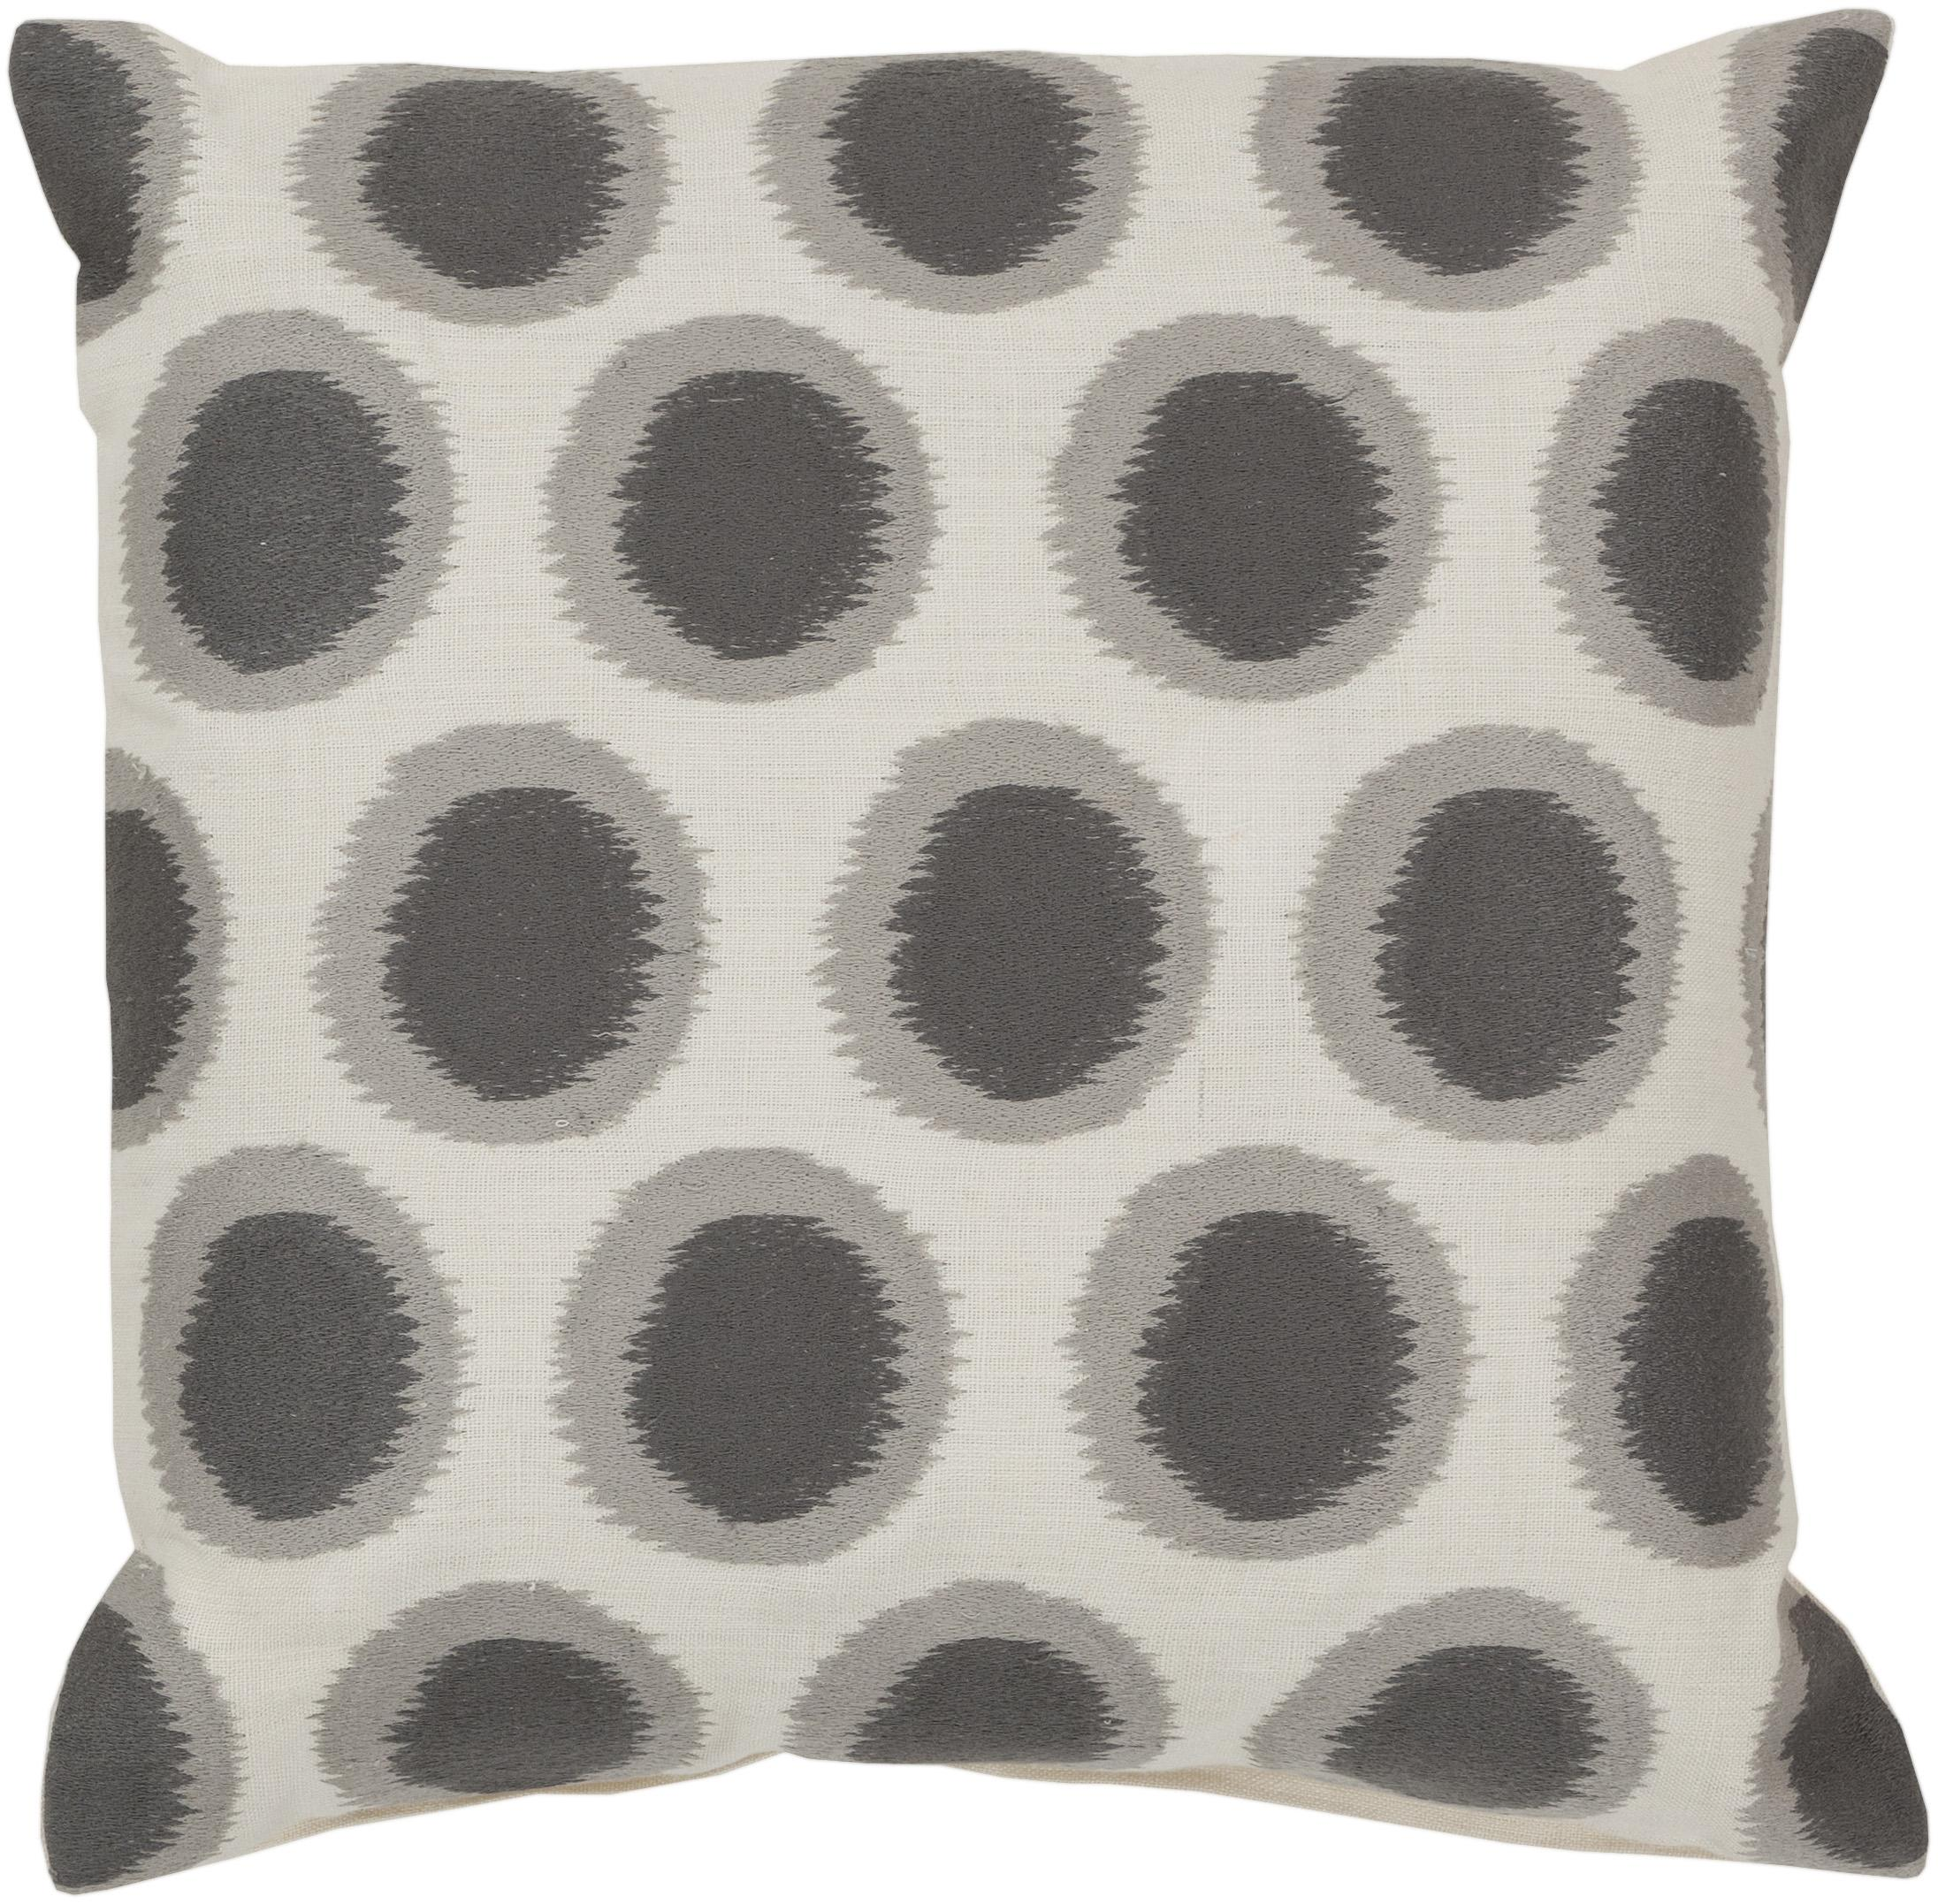 "Pillows 22"" x 22"" Pillow by Surya at Dream Home Interiors"